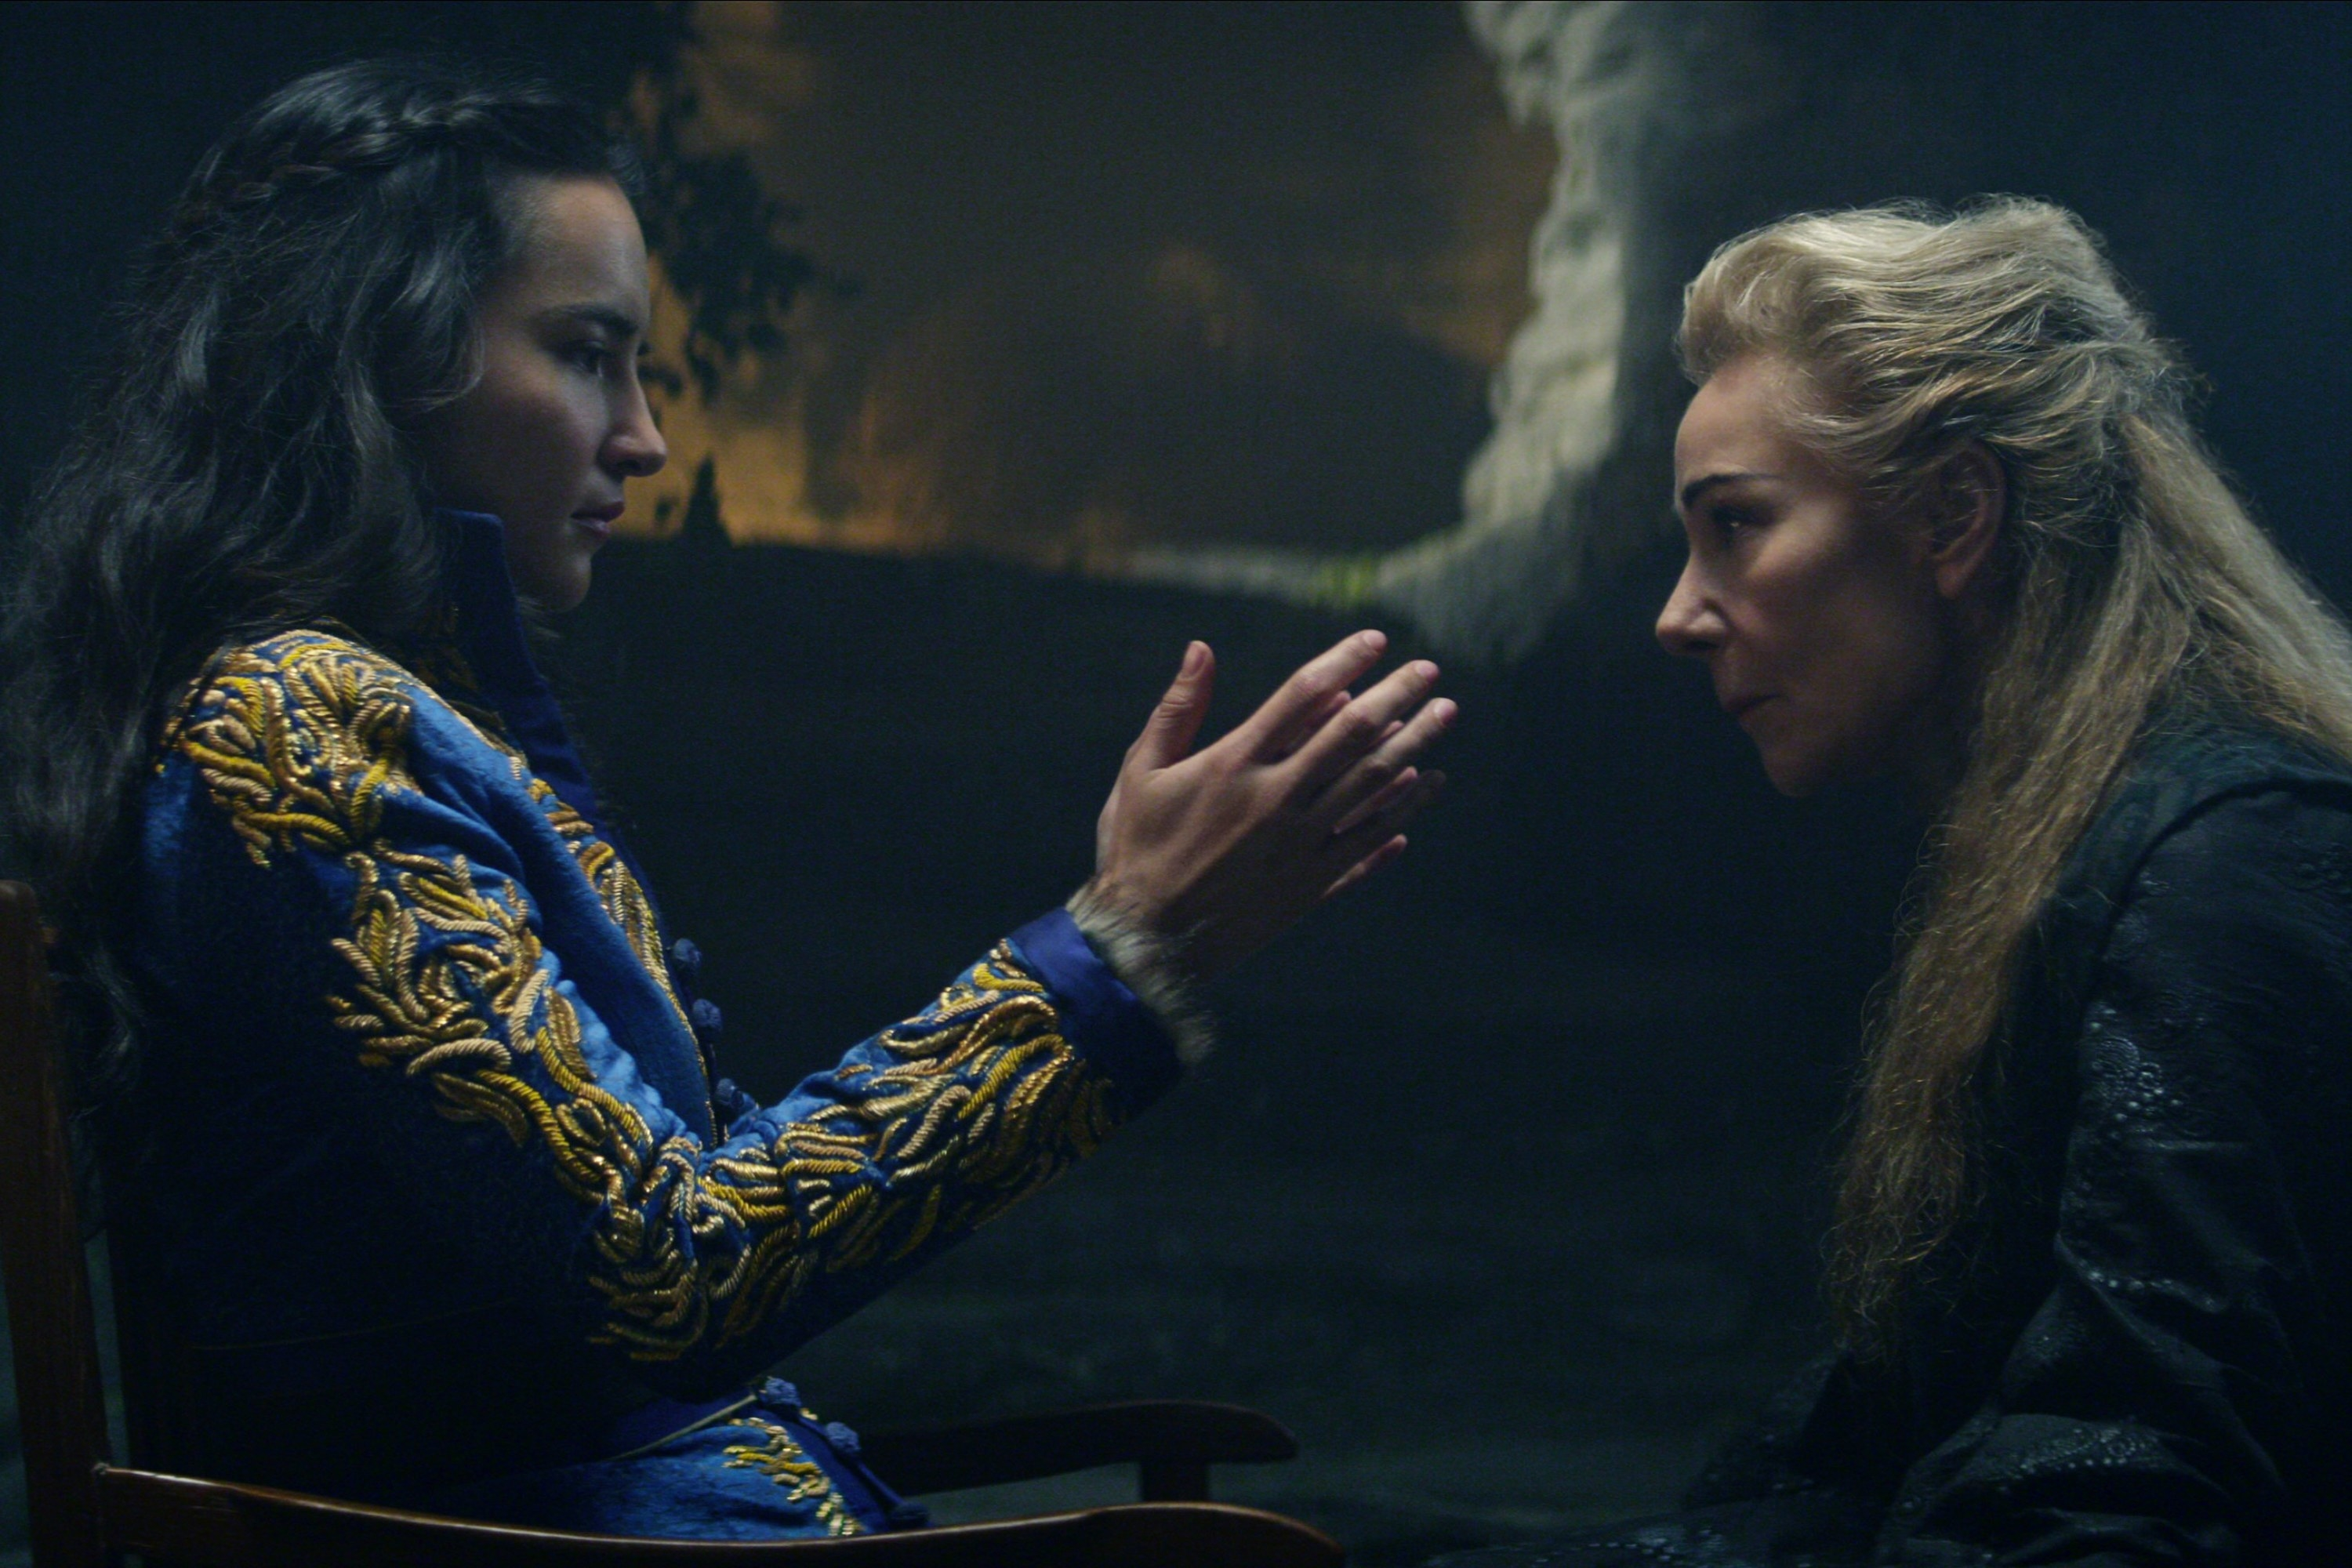 SHADOW AND BONE (L to R) JESSIE MEI LI as ALINA STARKOV and ZOè WANAMAKER as BAGHRA